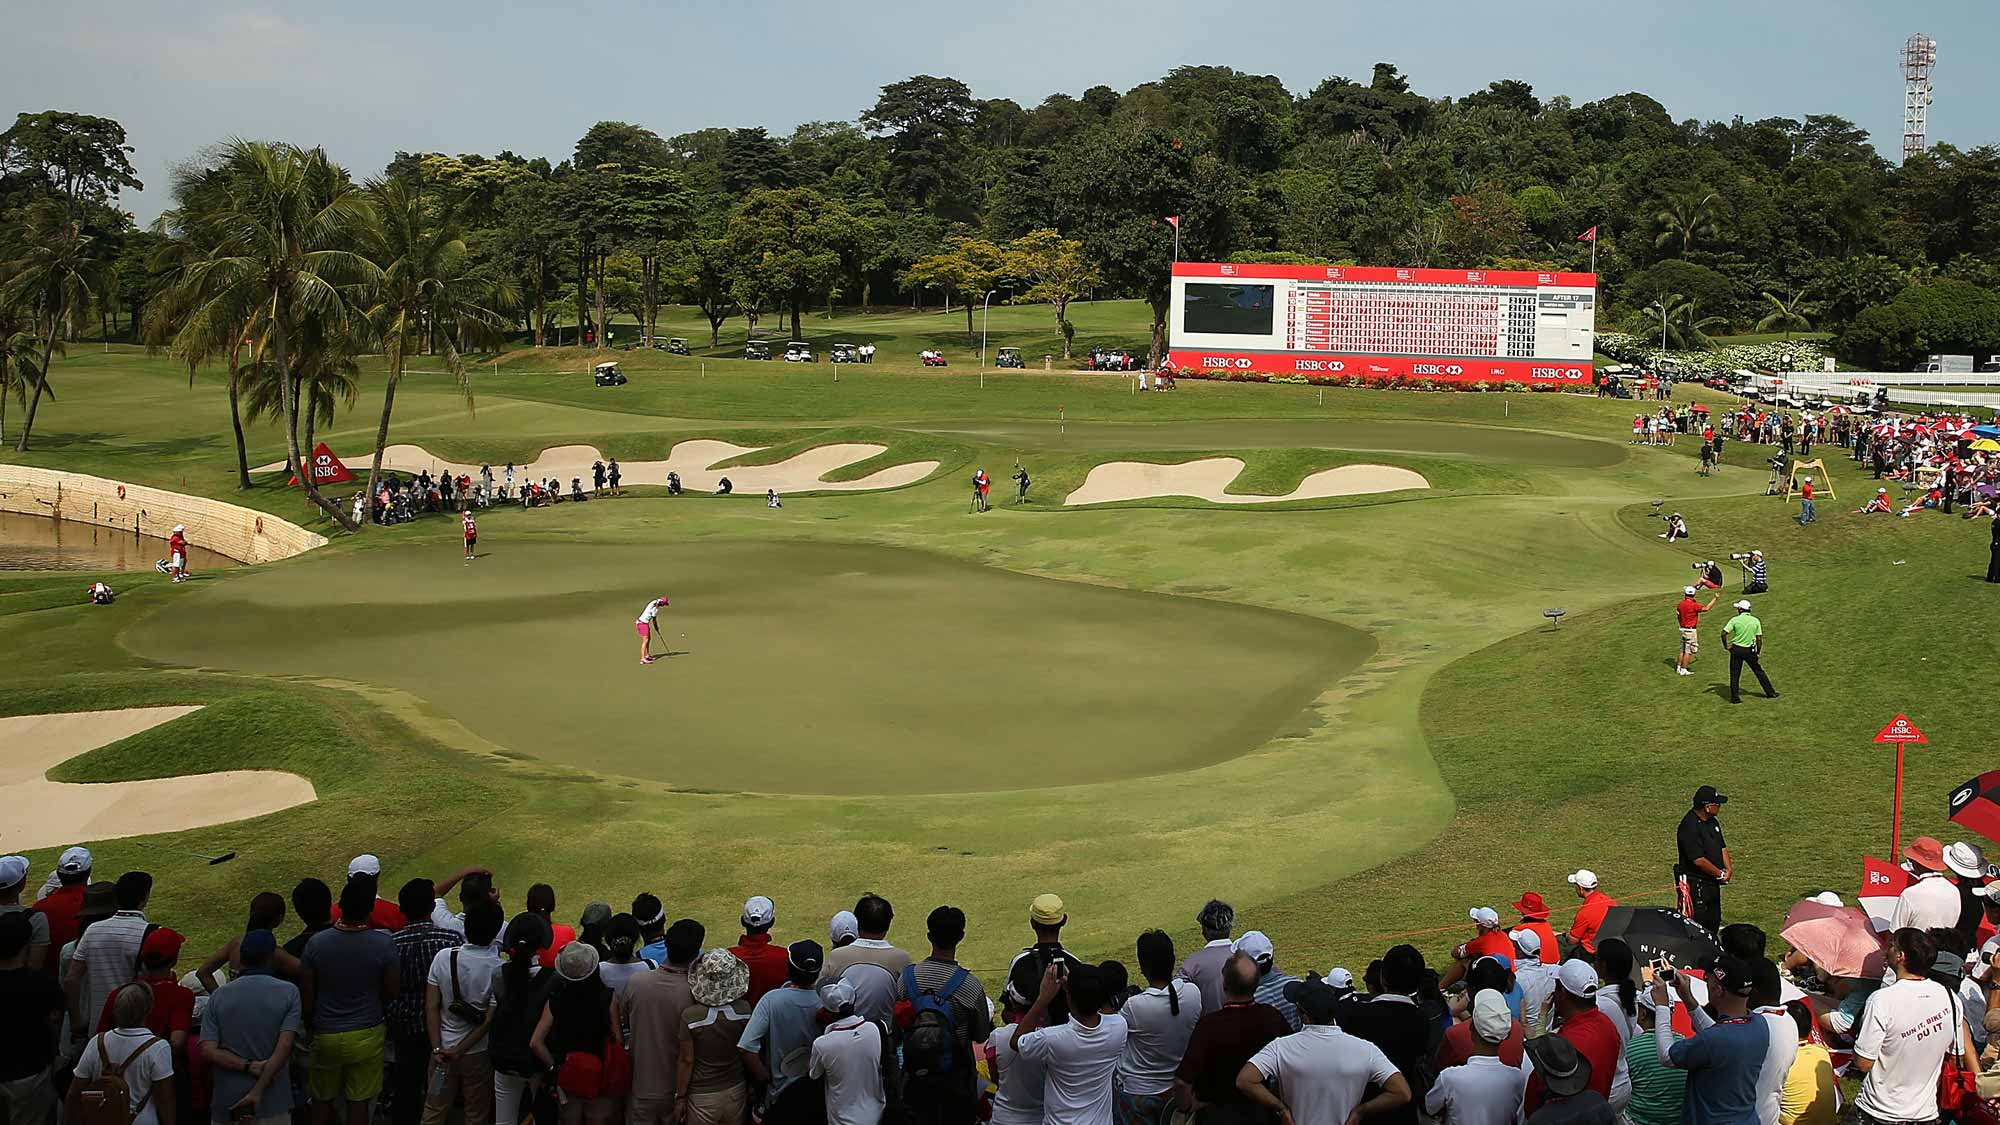 The Serapong Course at the Sentosa Golf Club in Singapore